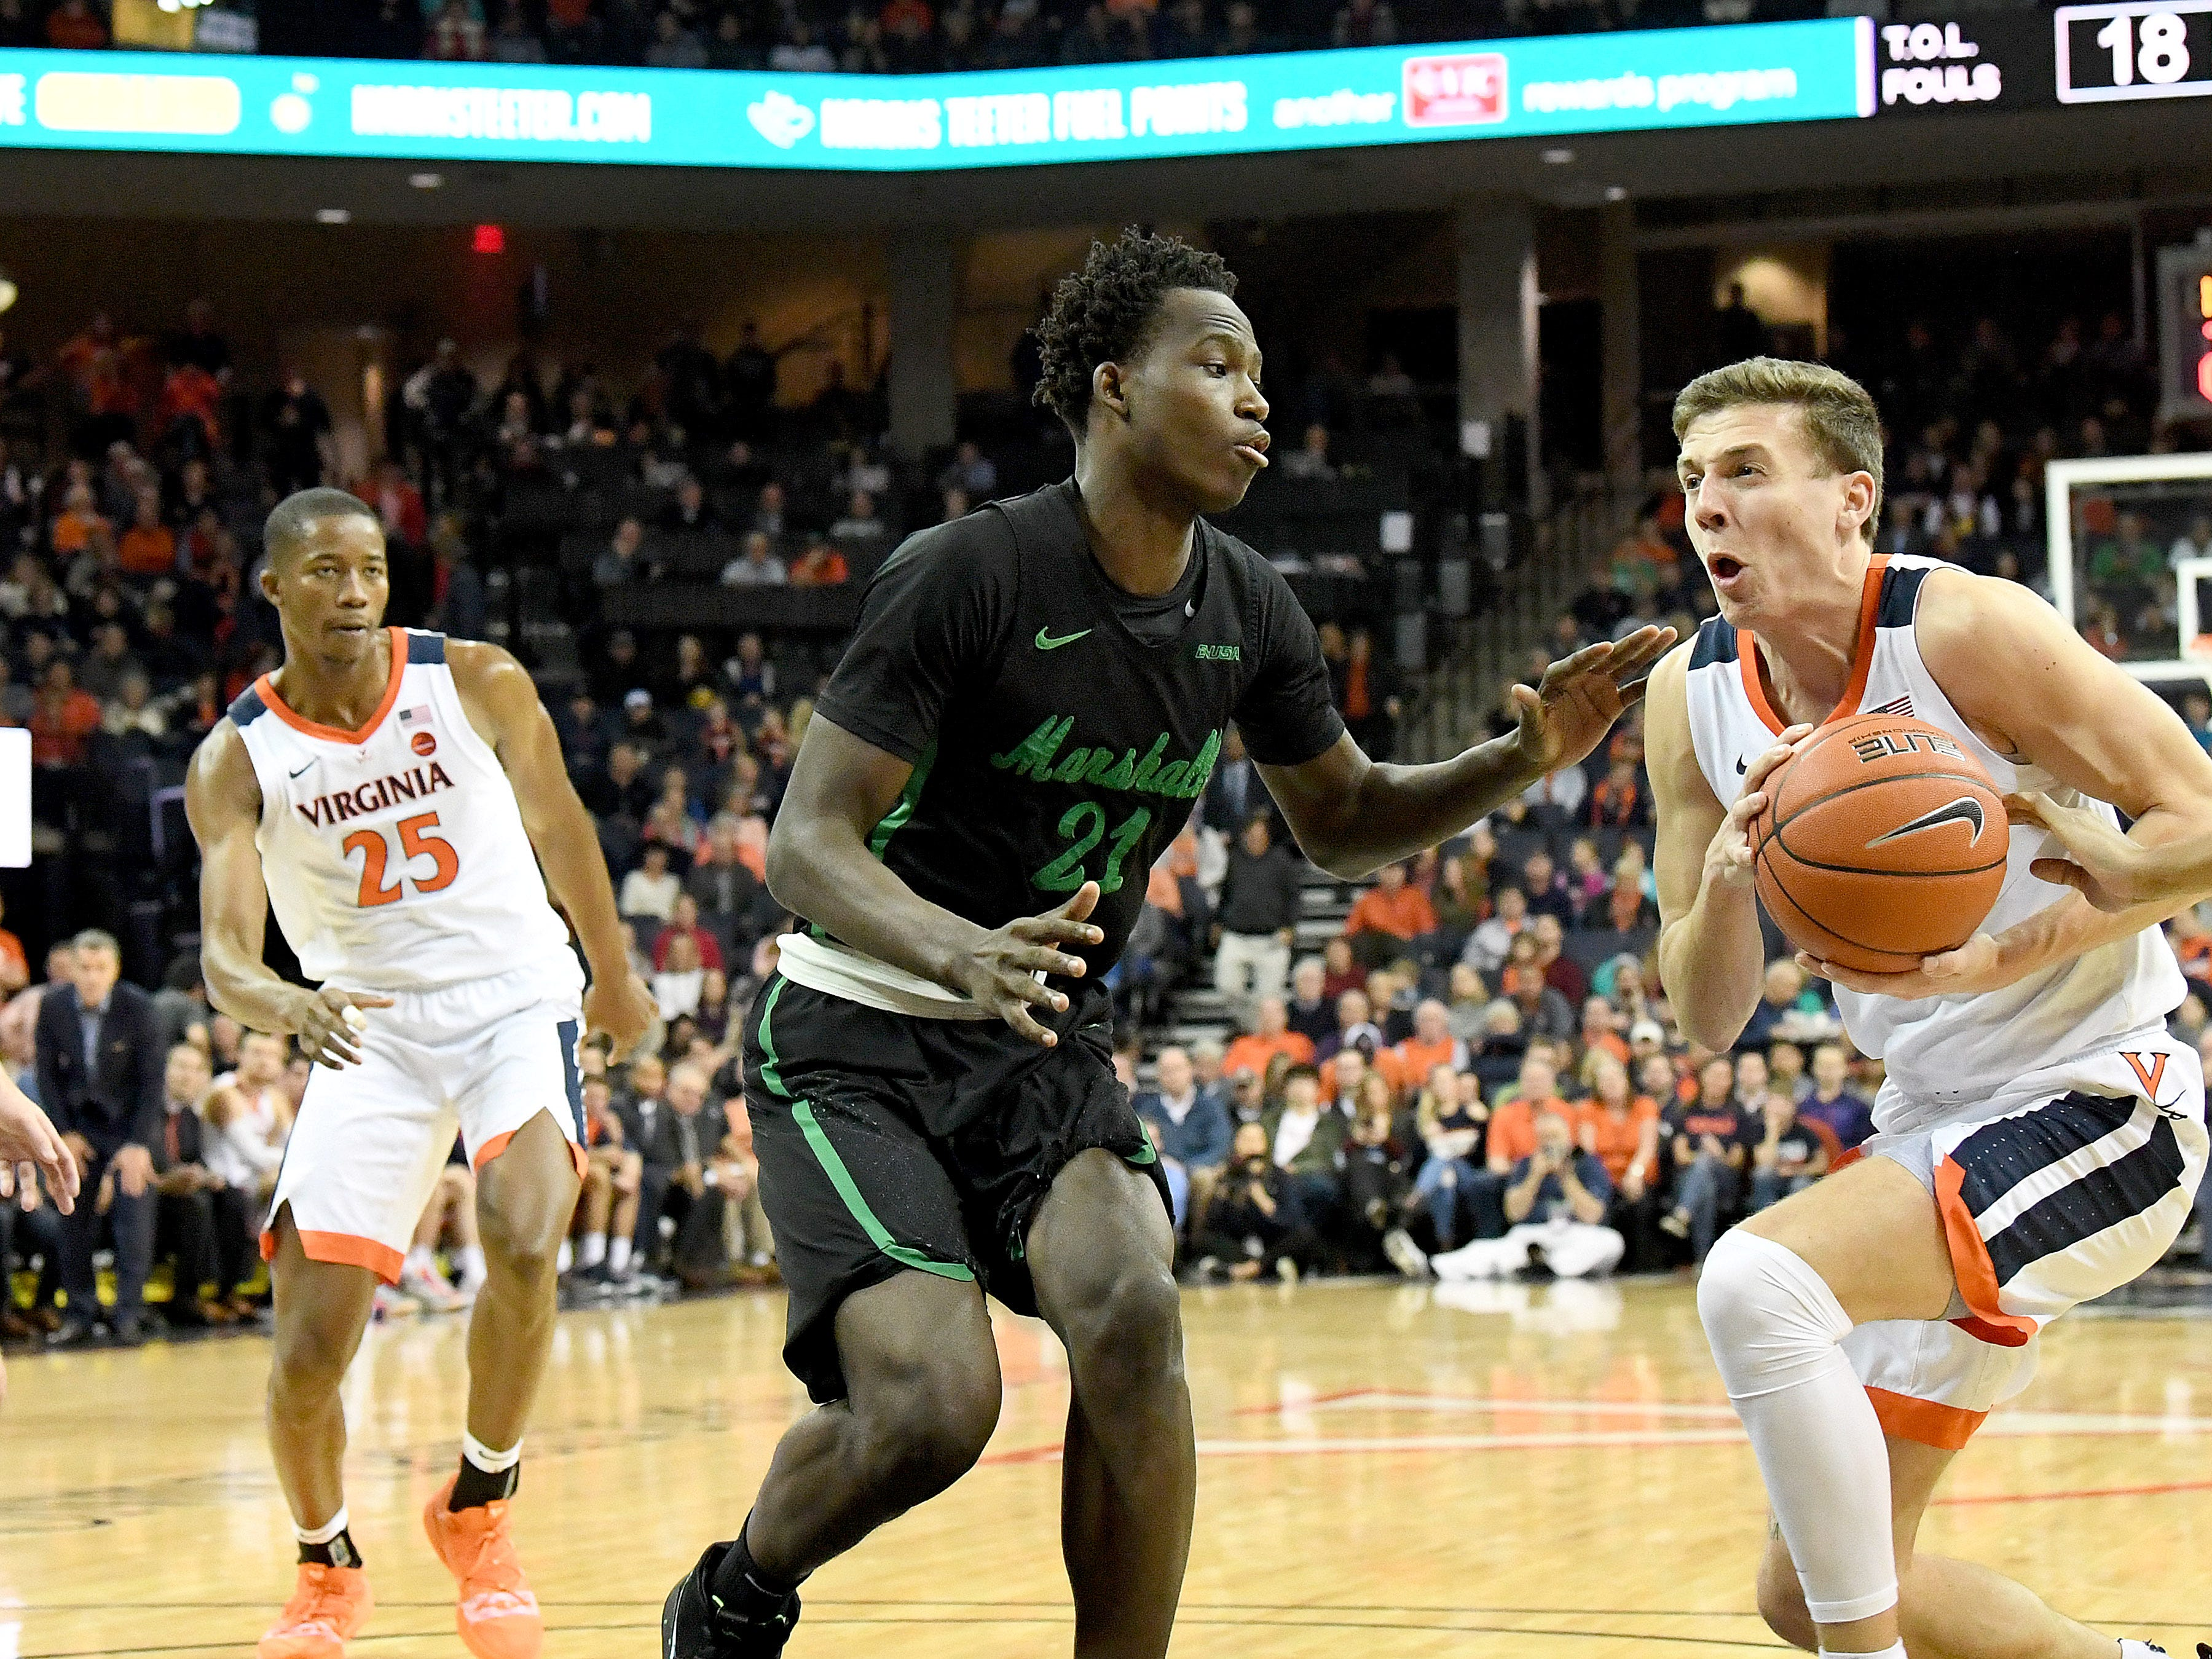 Marshall's Darius George, former R.E. Lee star, guards against Virginia's Kyle Guy during their game against University of Virginia, played at the John Paul Jones Arena on Dec. 31, 2016.